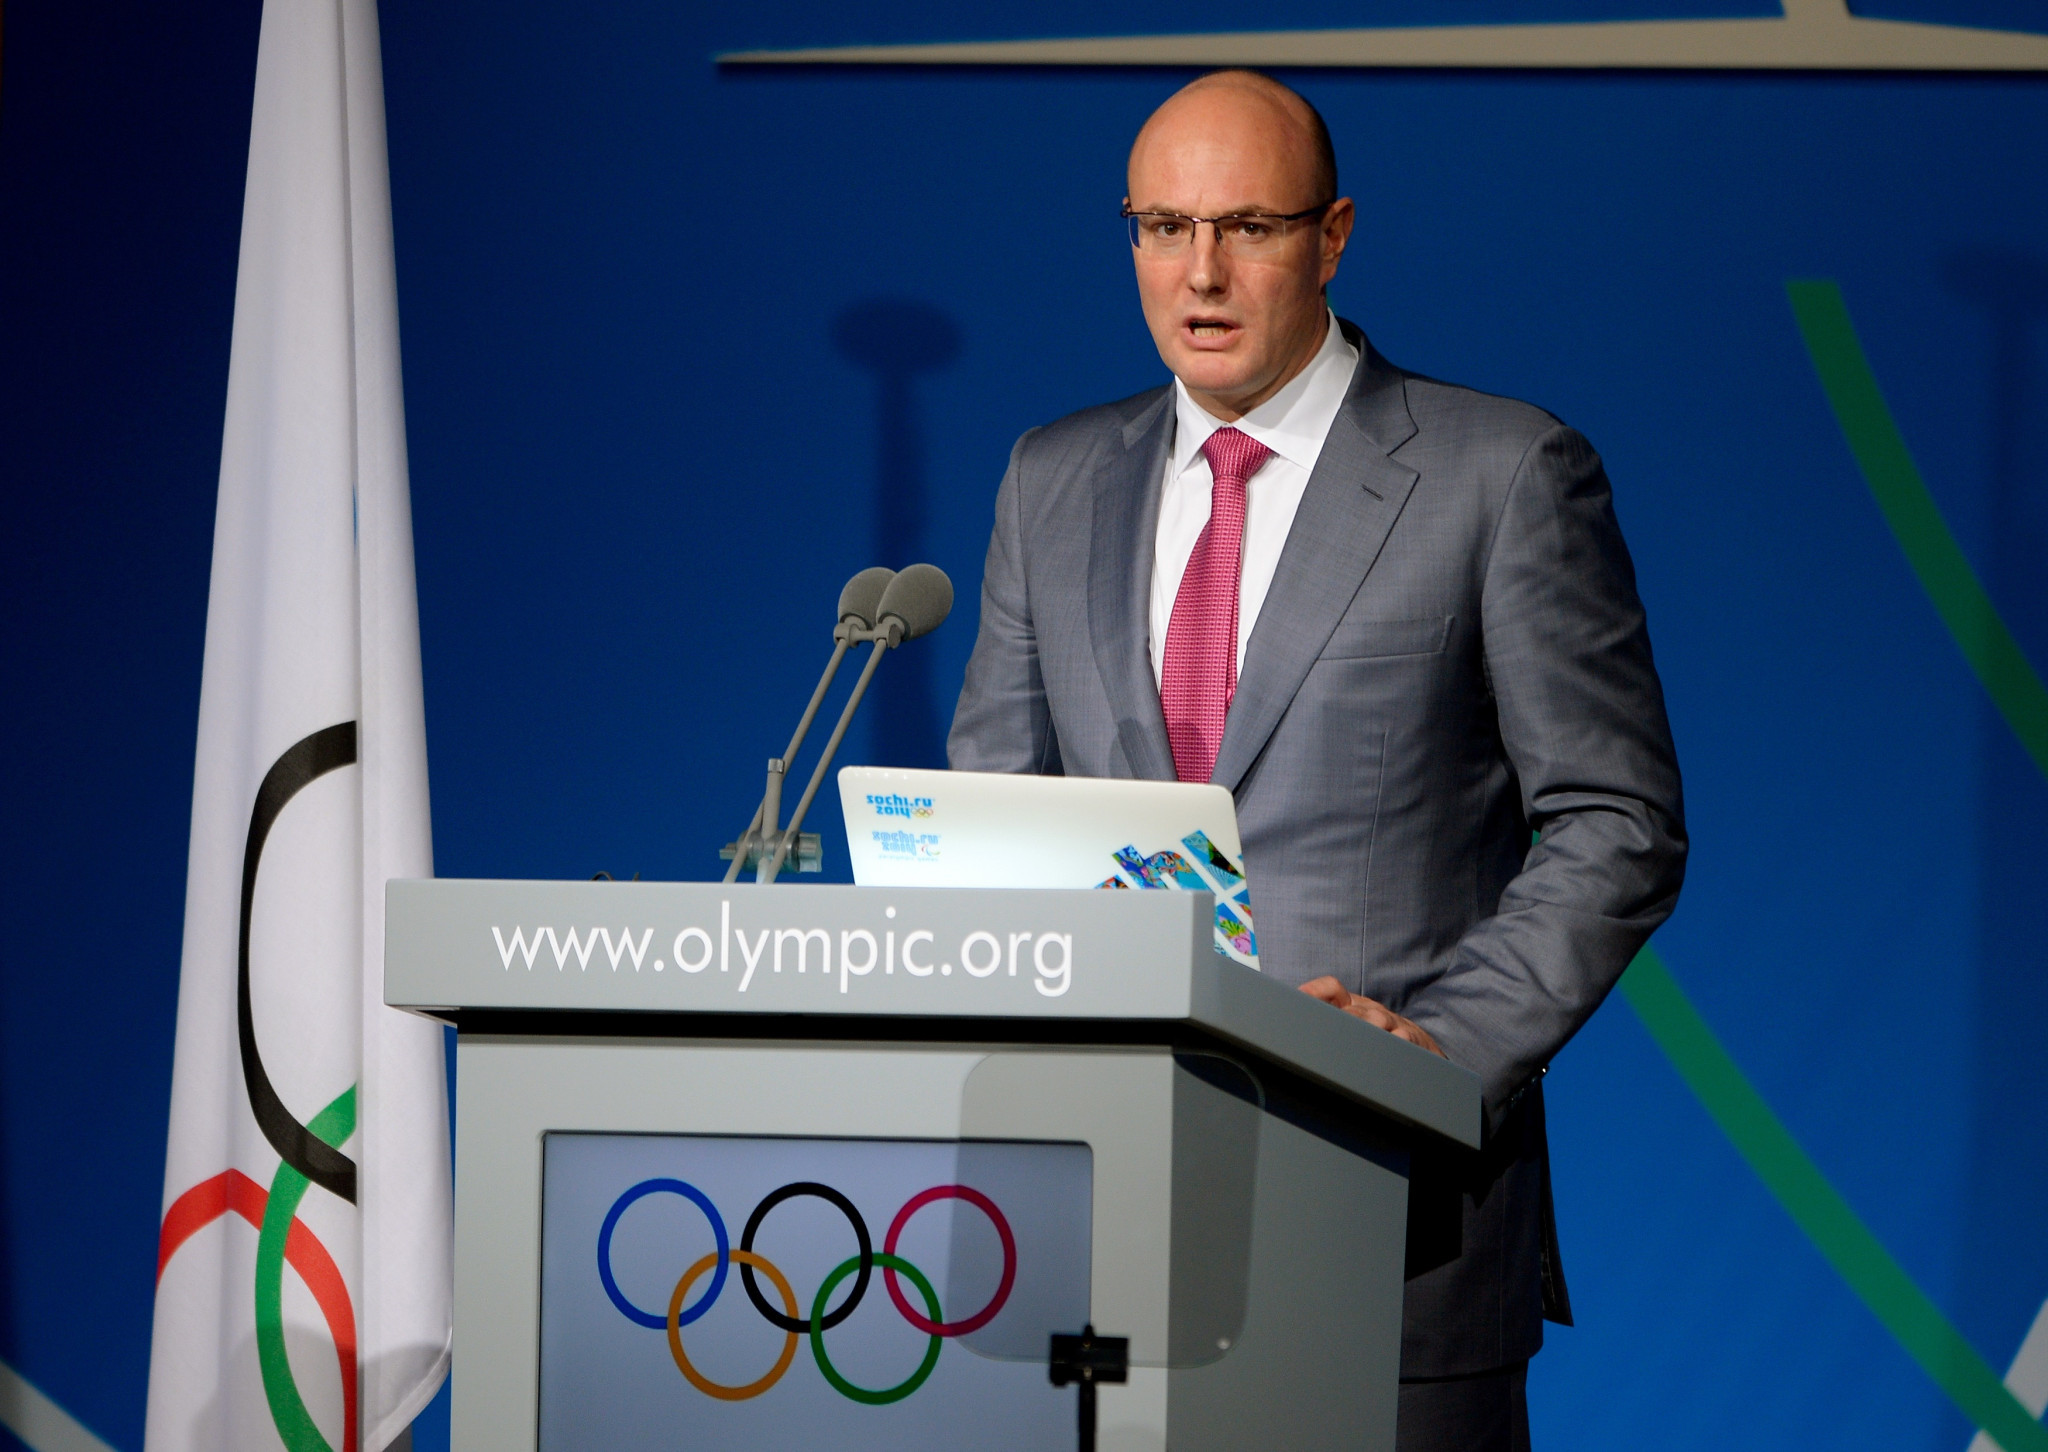 Russian Deputy Prime Minister meets FIVB President to discuss 2022 Men's Volleyball World Championship